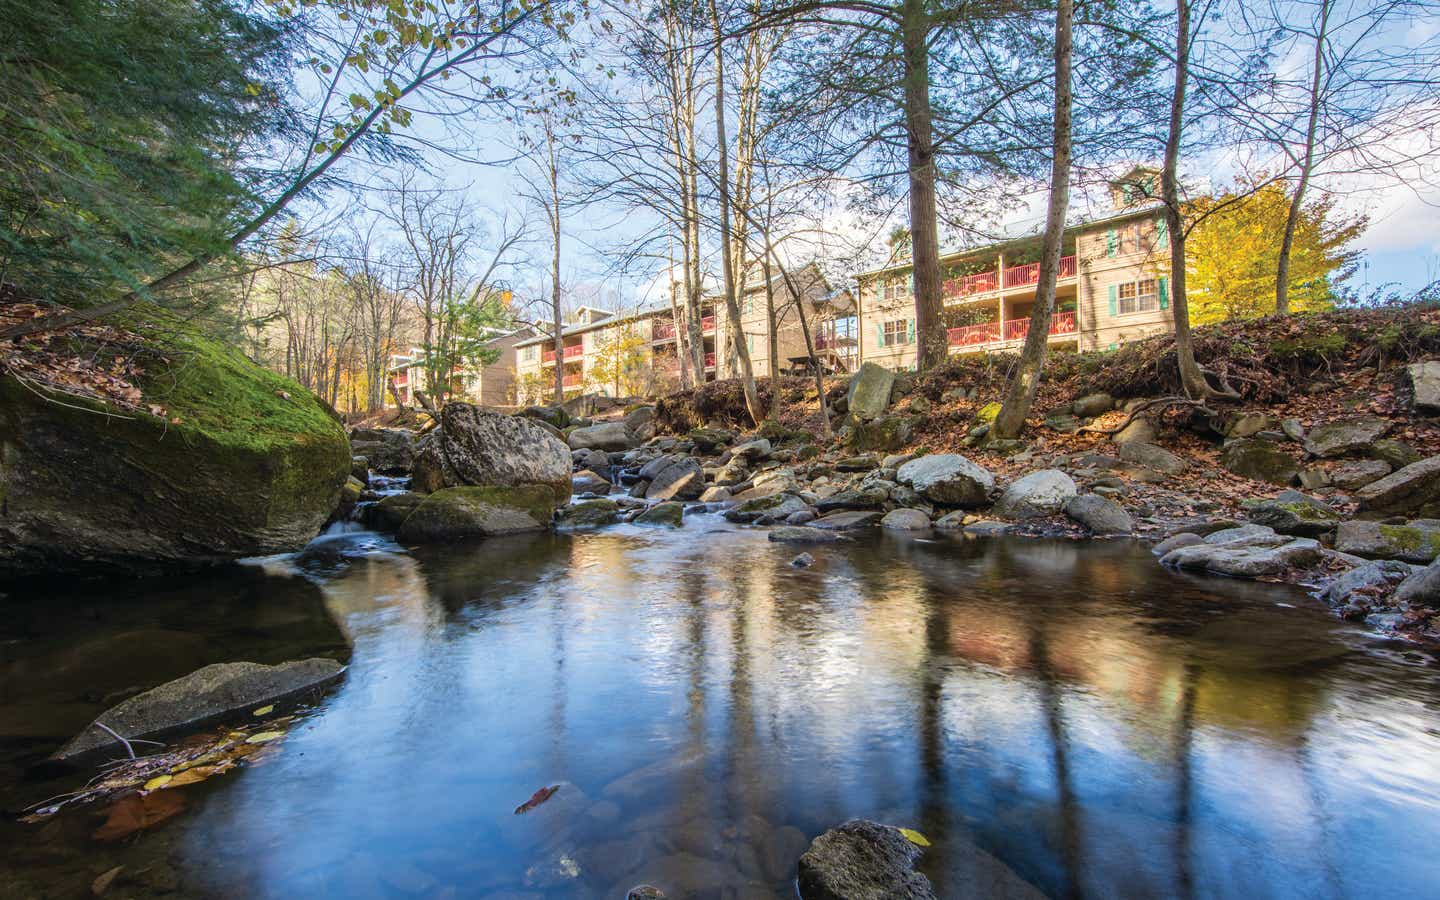 A creek lined with trees and running along the Oak n' Spruce Resort in South Lee, Massachusetts